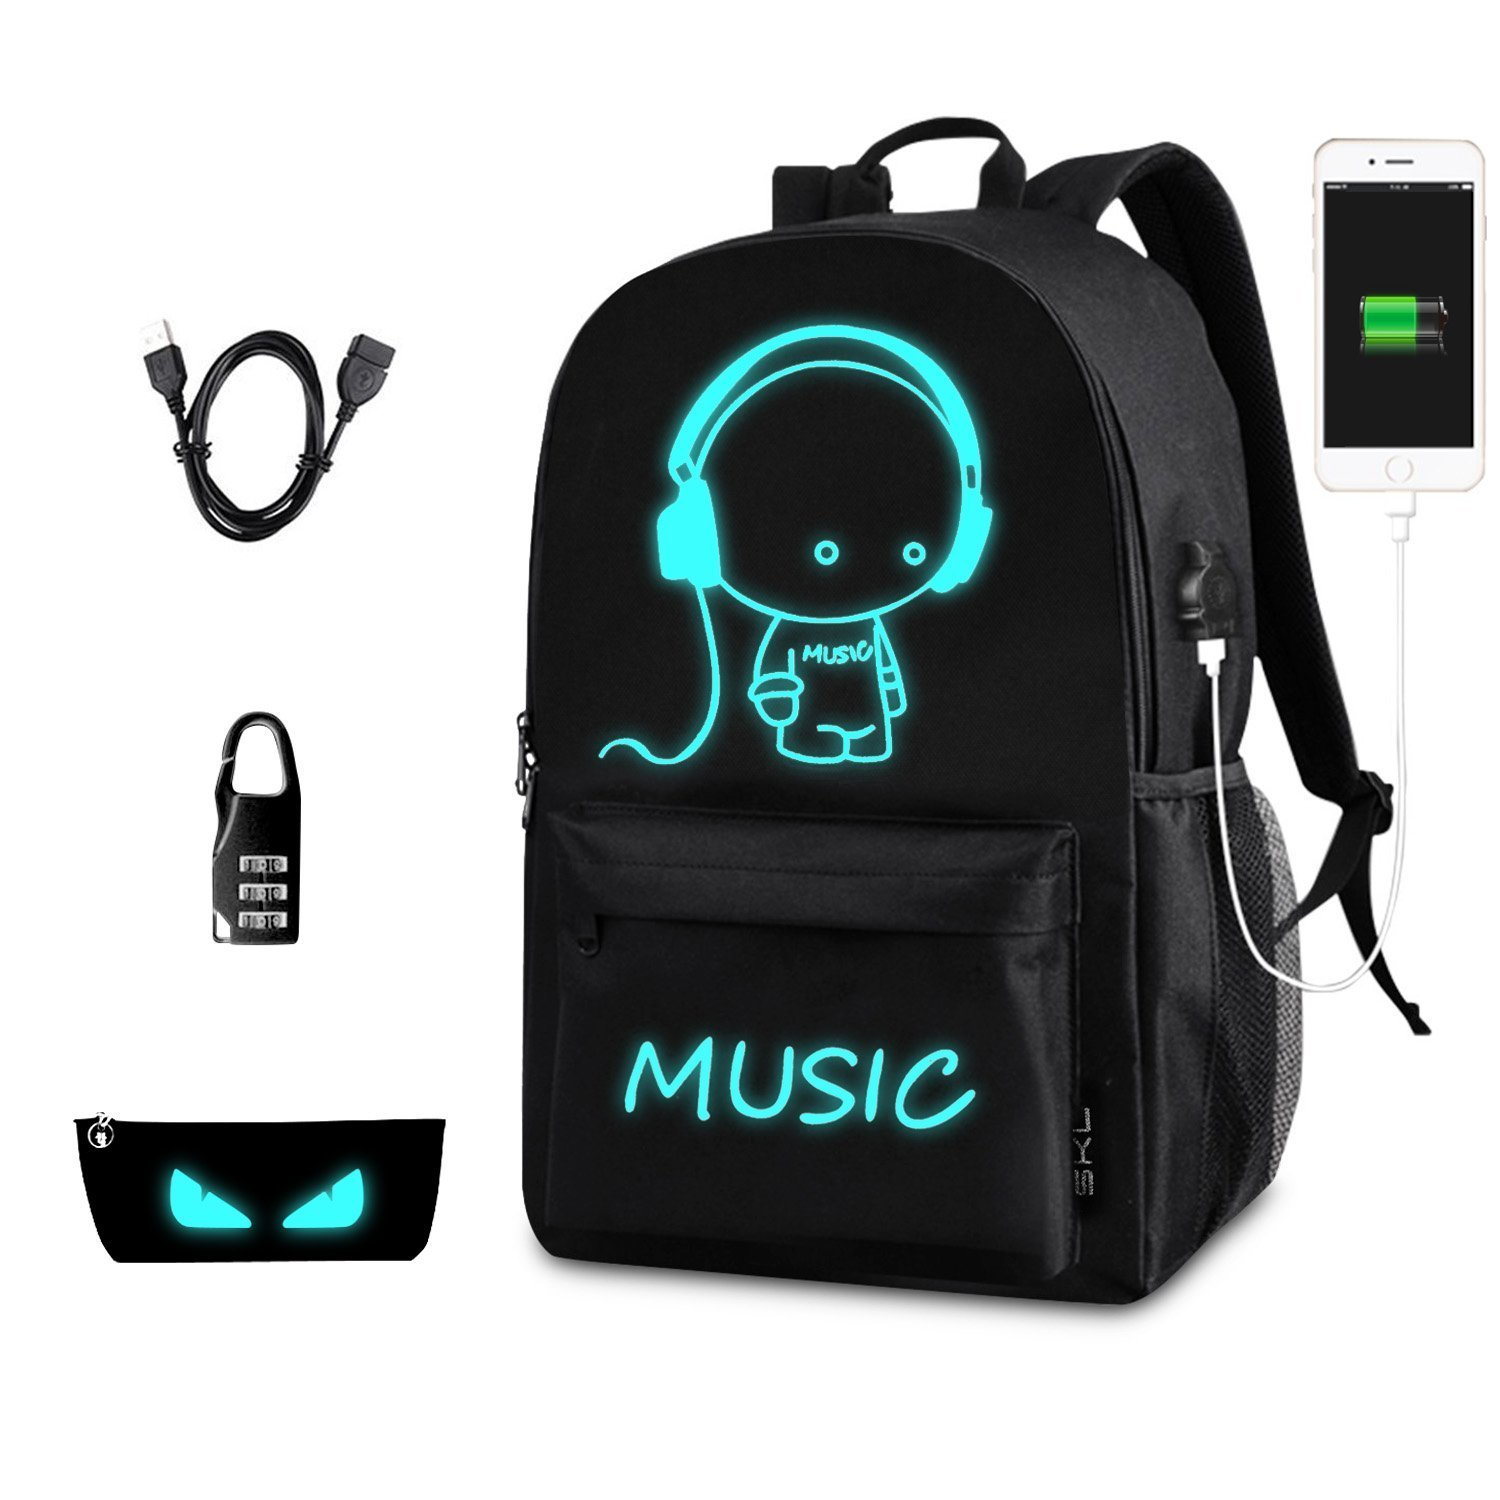 Anime Backpack for School, SKL Luminous Backpack Cartoon Backpack with USB Cable and Pencil Bag for Teens Girls Boys-Black Big Size